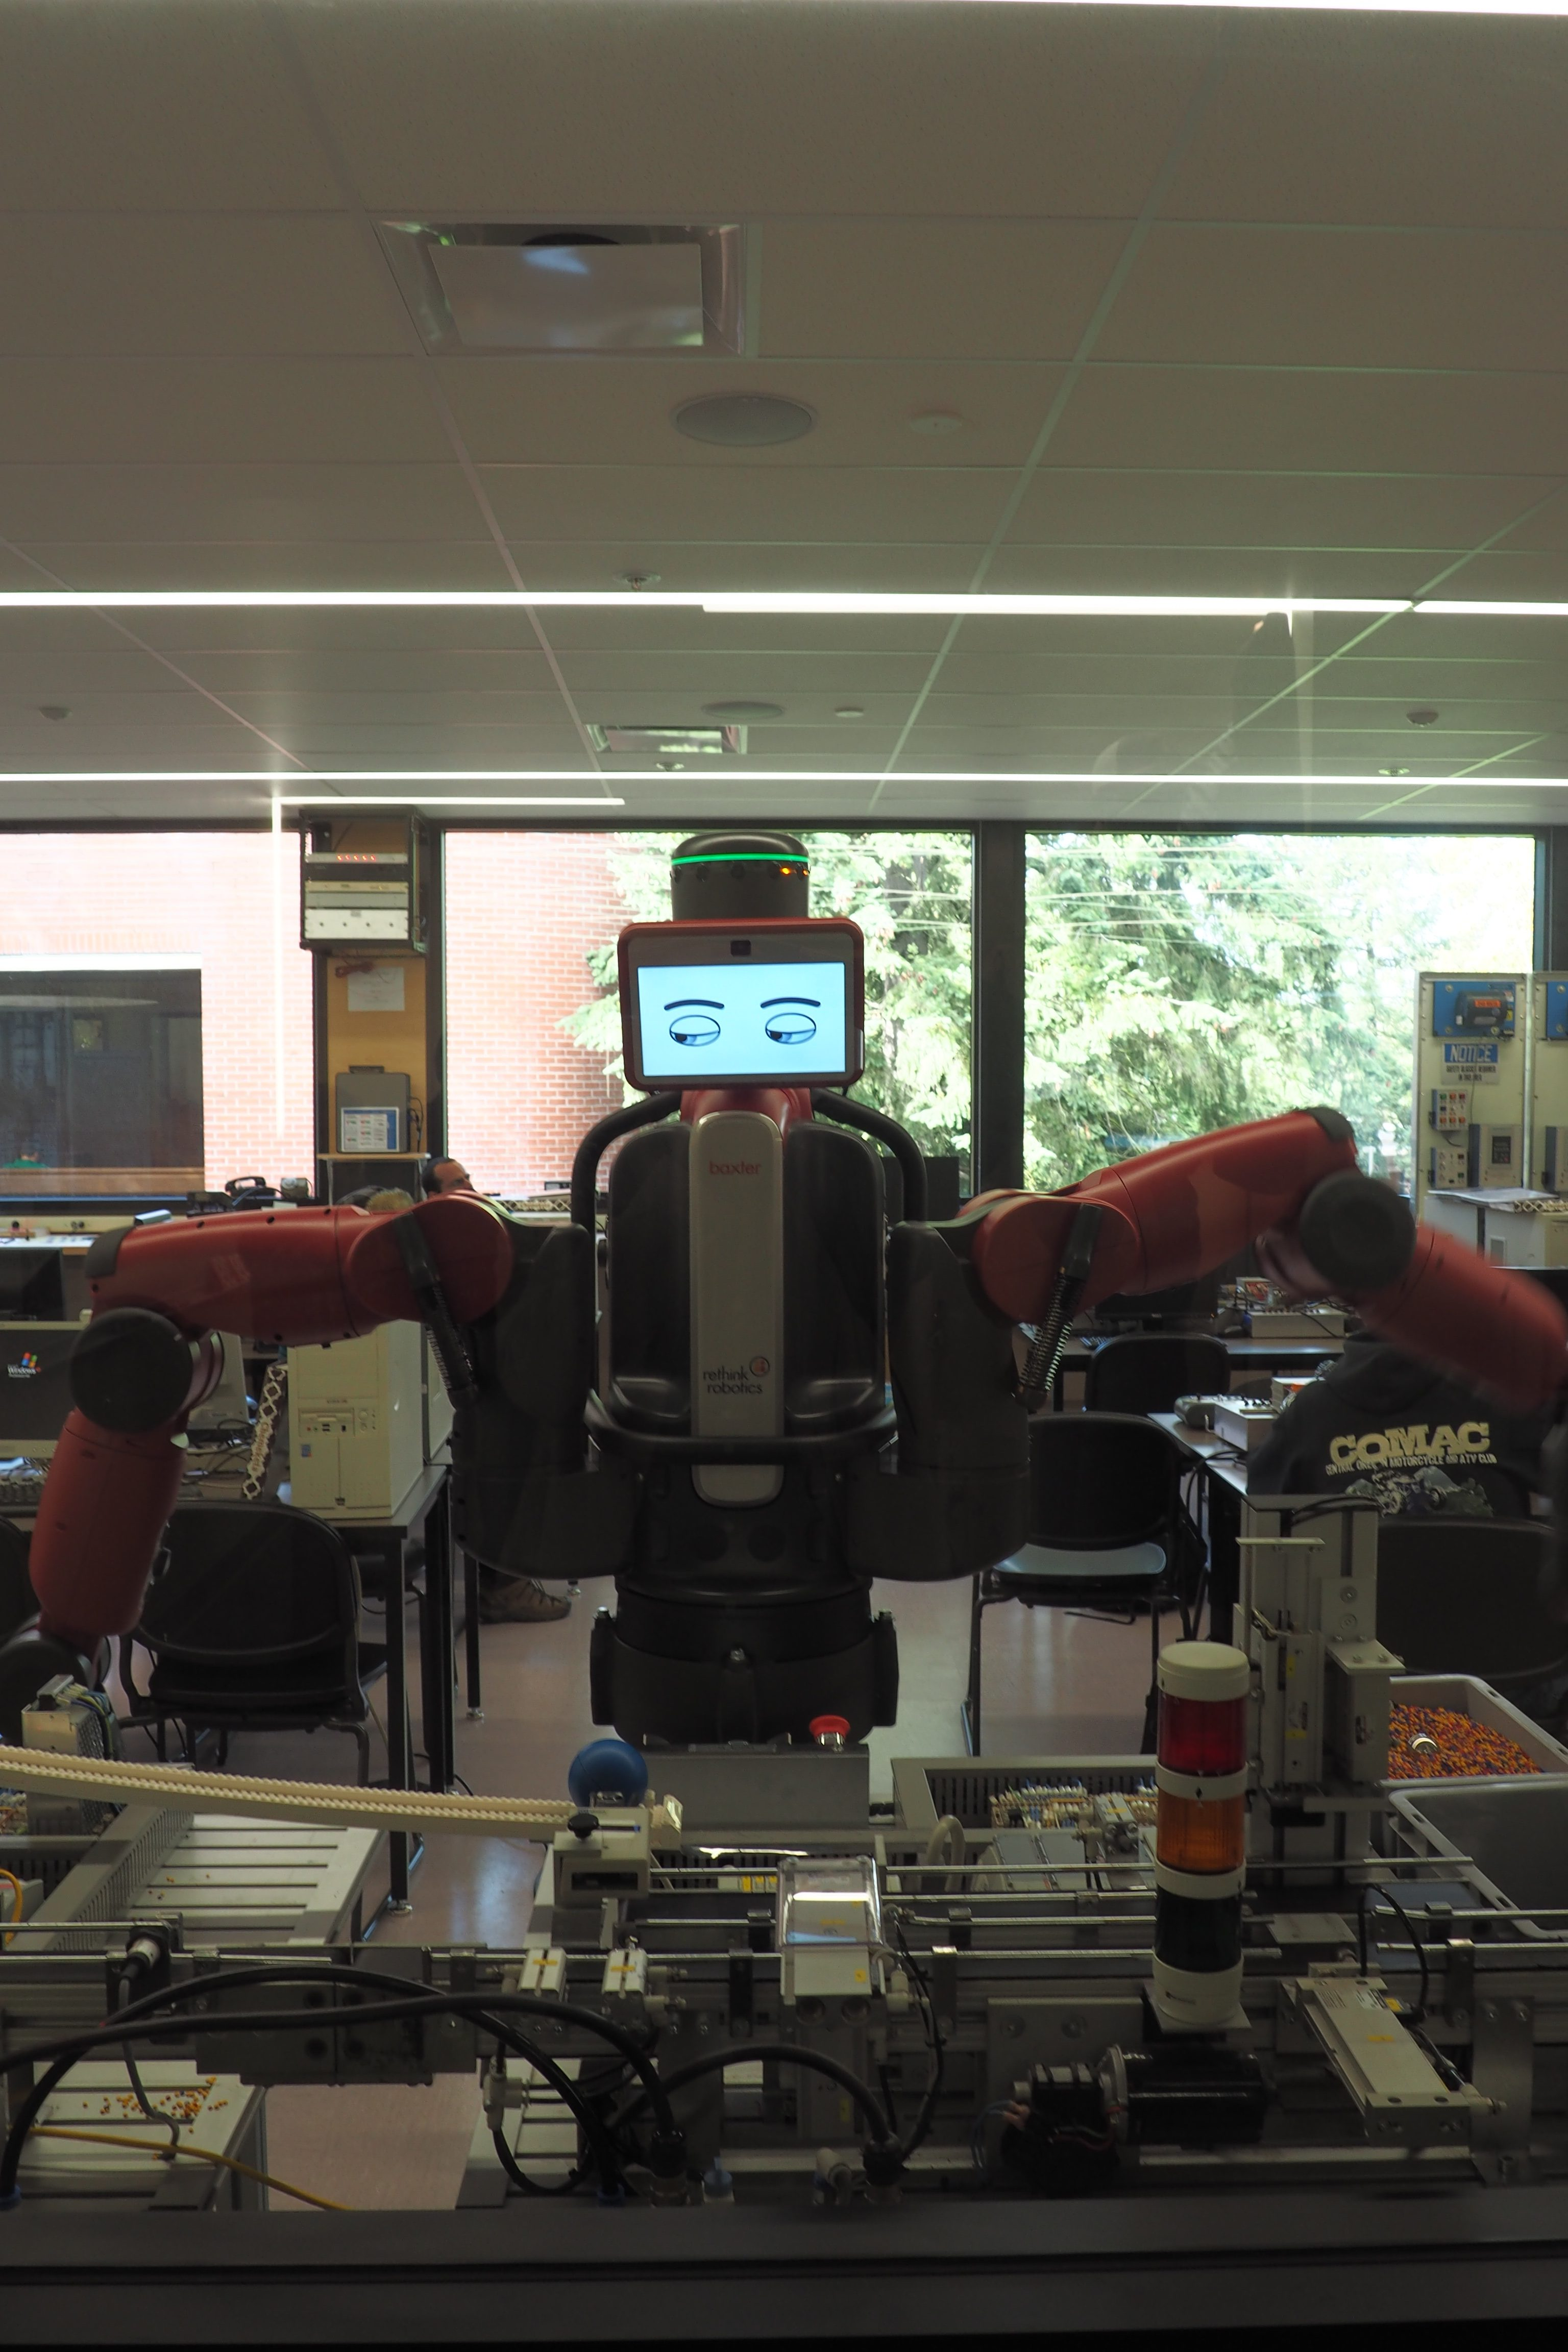 The robot, affectionately known as Baxter, as seen from the hallway outside the robotics lab. Photo by Saul Rodriguez